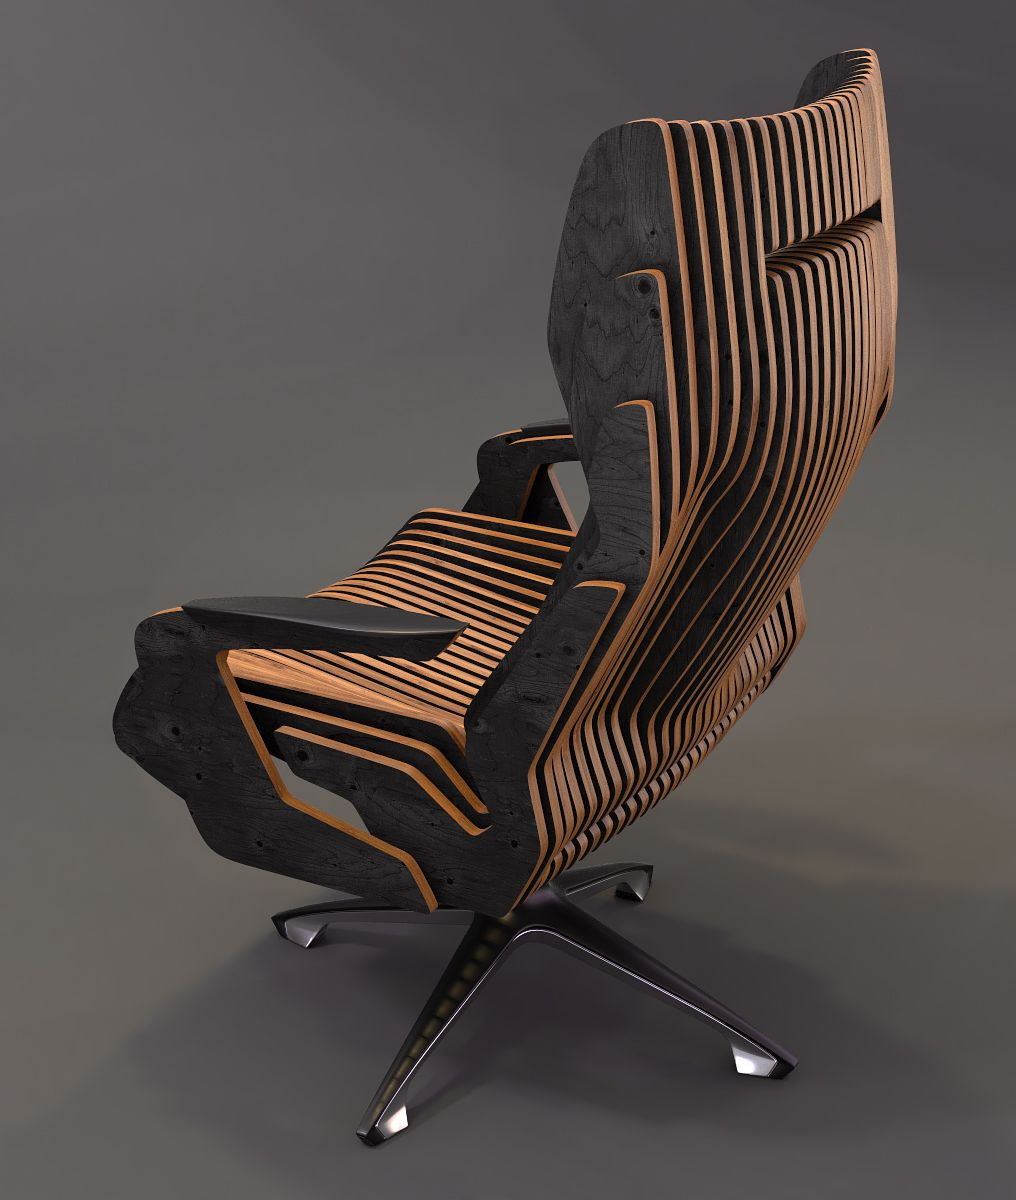 Concept Of Parametric Chair Chairs Furniture